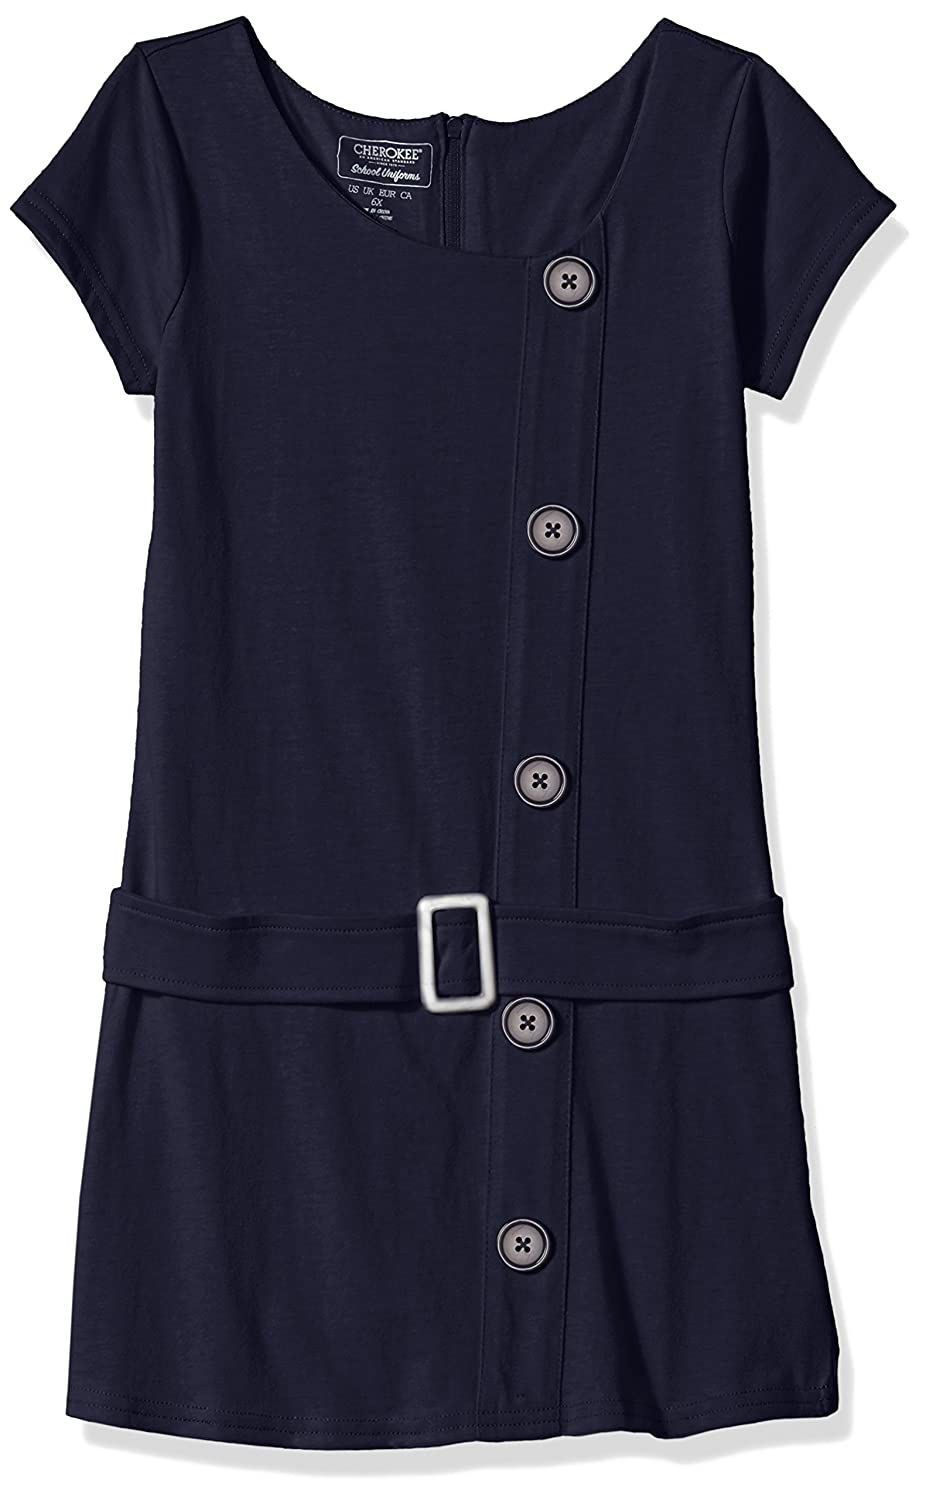 CHEROKEE Girls' Uniform Dress Navy Buckle 6X 87D2912EEN